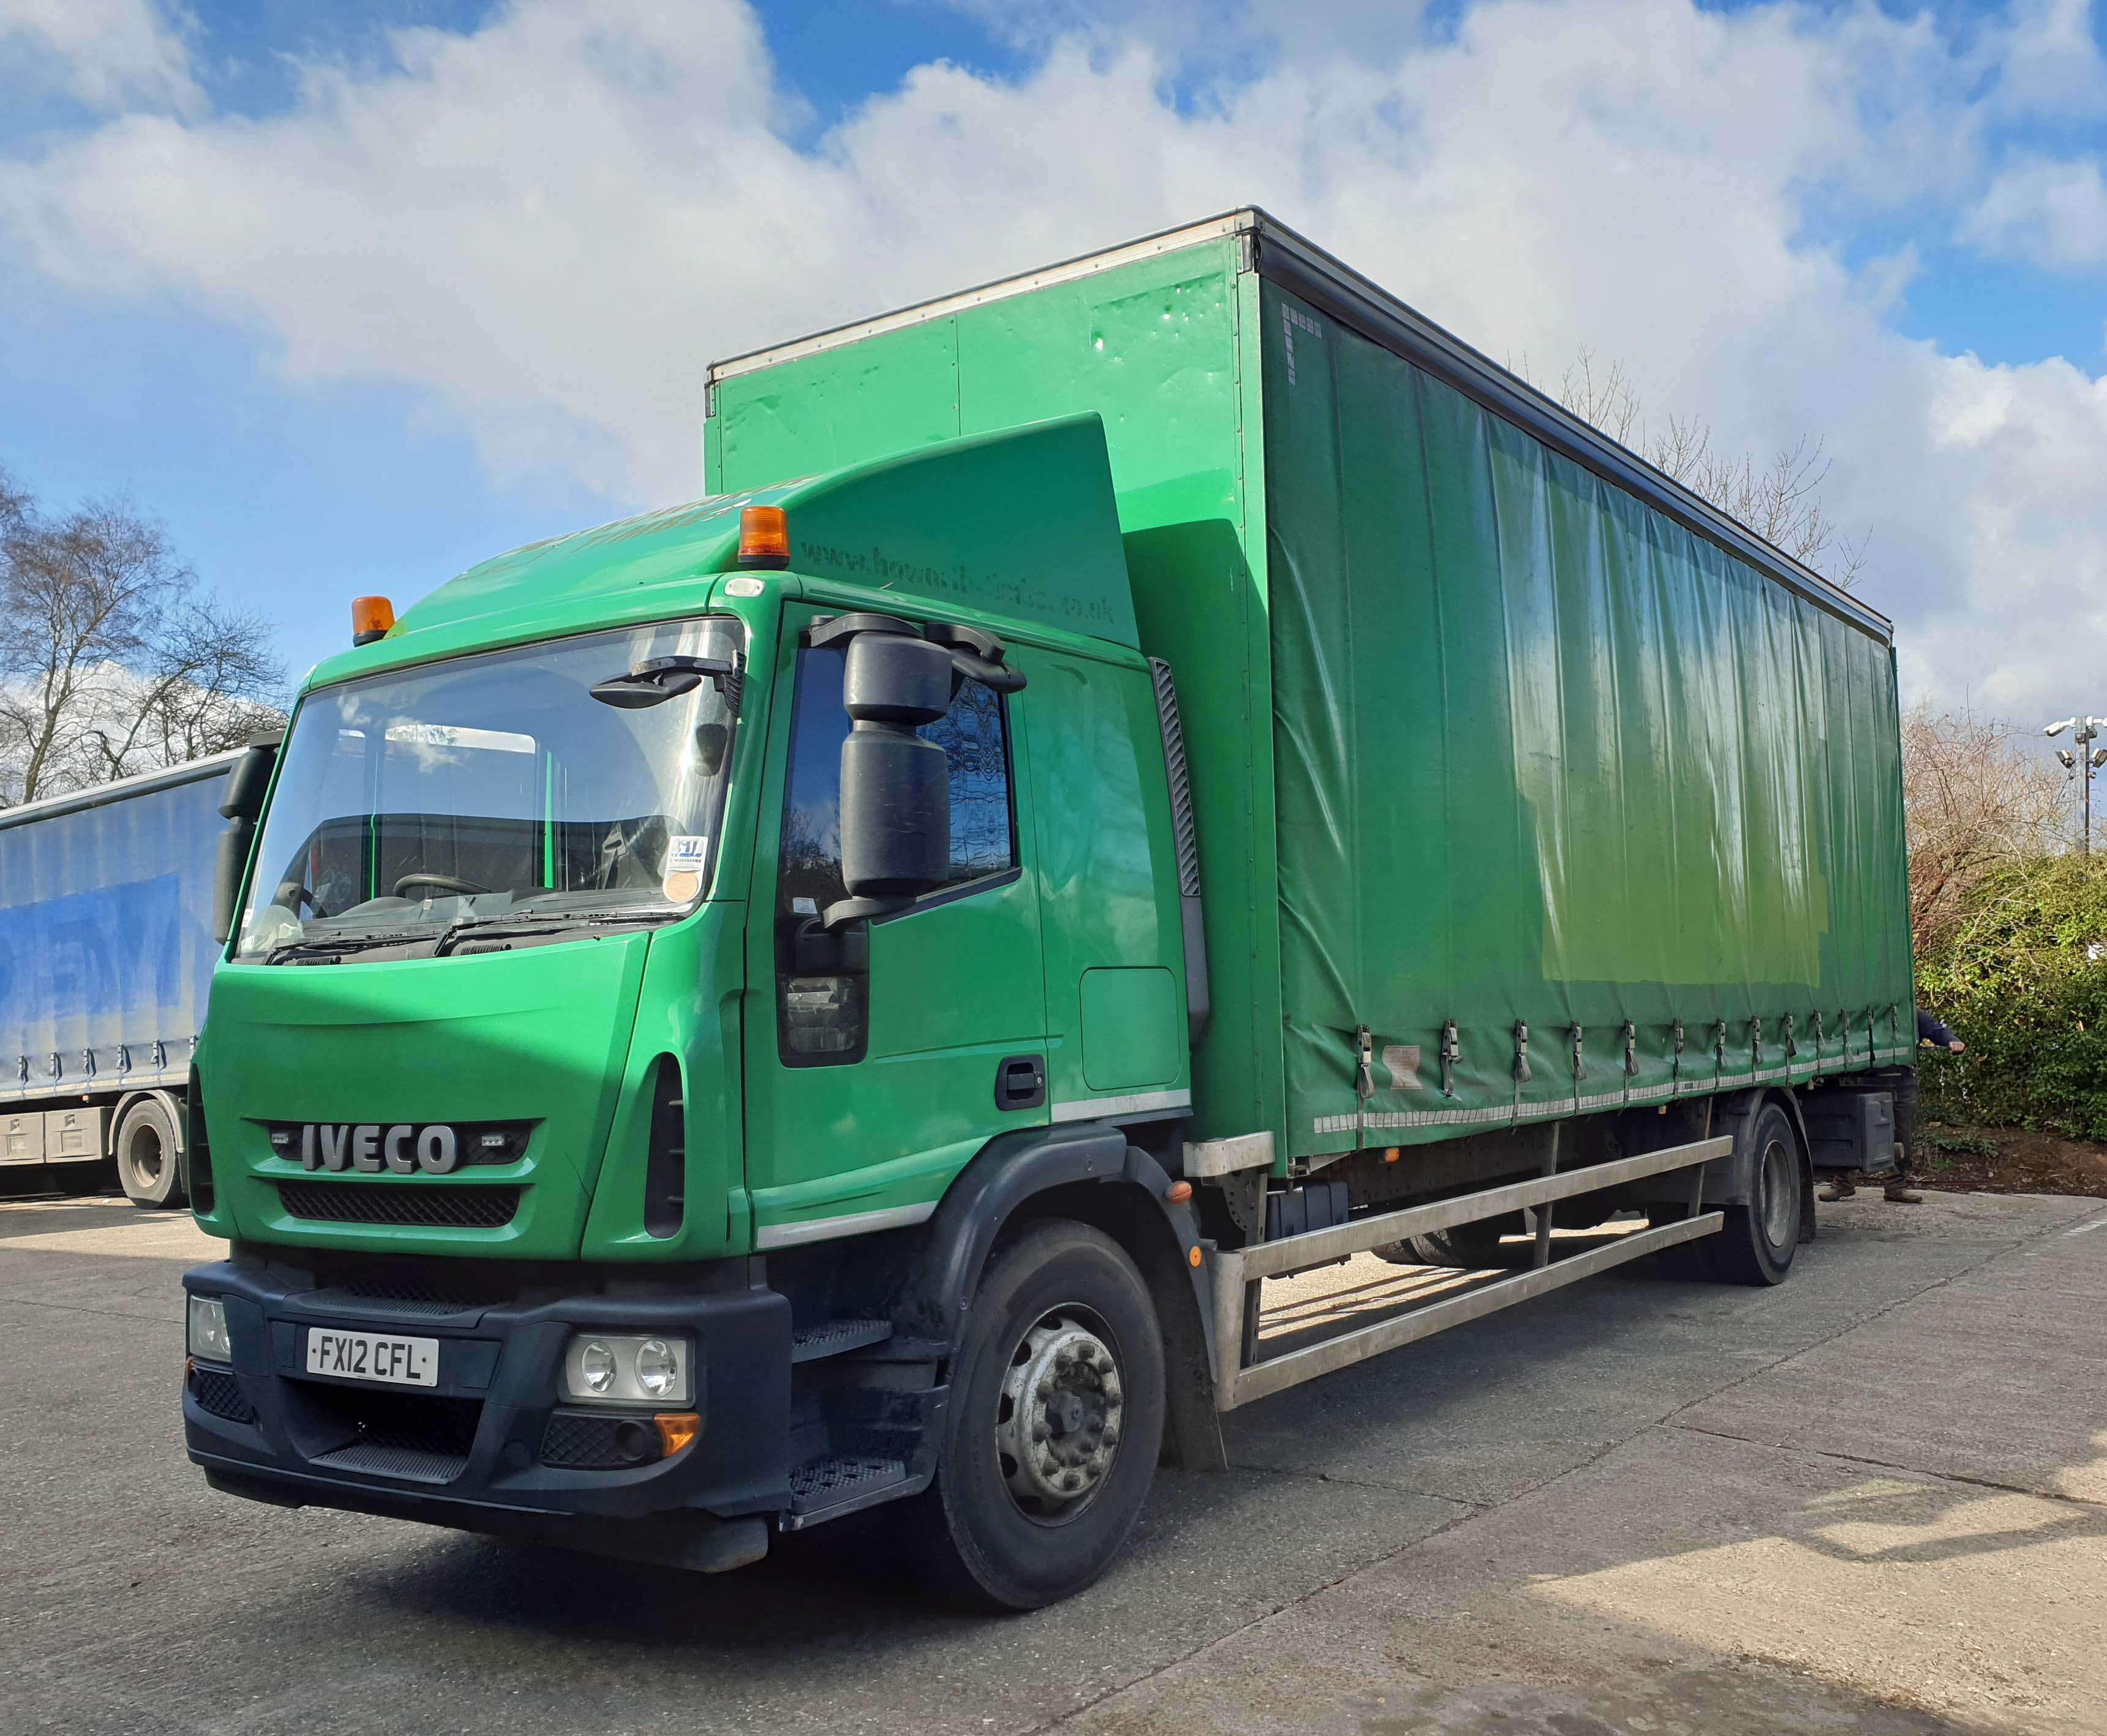 An IVECO Eurocargo ML180E25 5880cc Euro5 18-Tonne 4x2 Curtainside Truck, Registration No. FX12 - Image 2 of 8